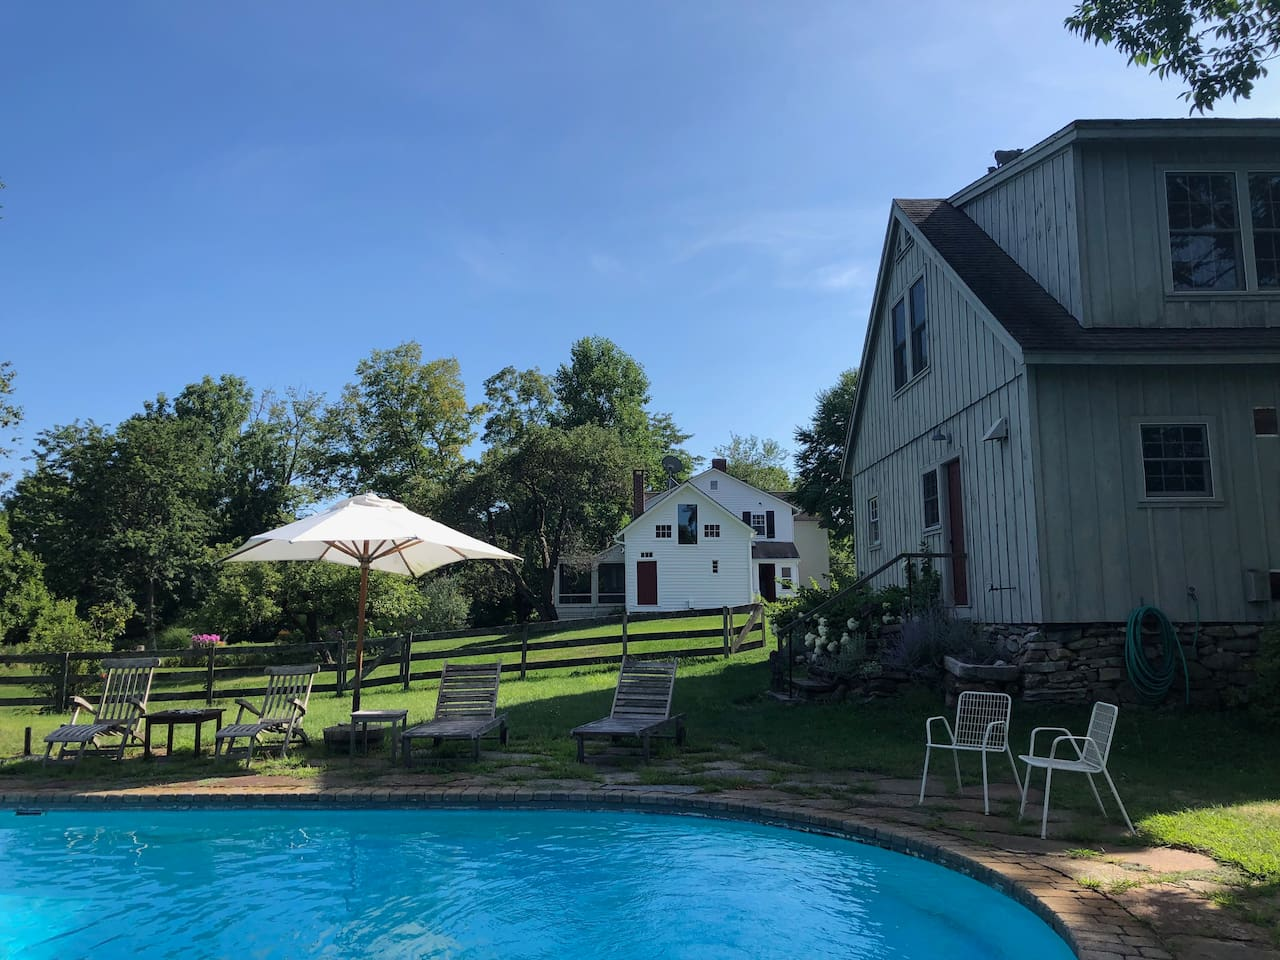 Grey Barn Guesthouse with pool. Farmhouse in the background.